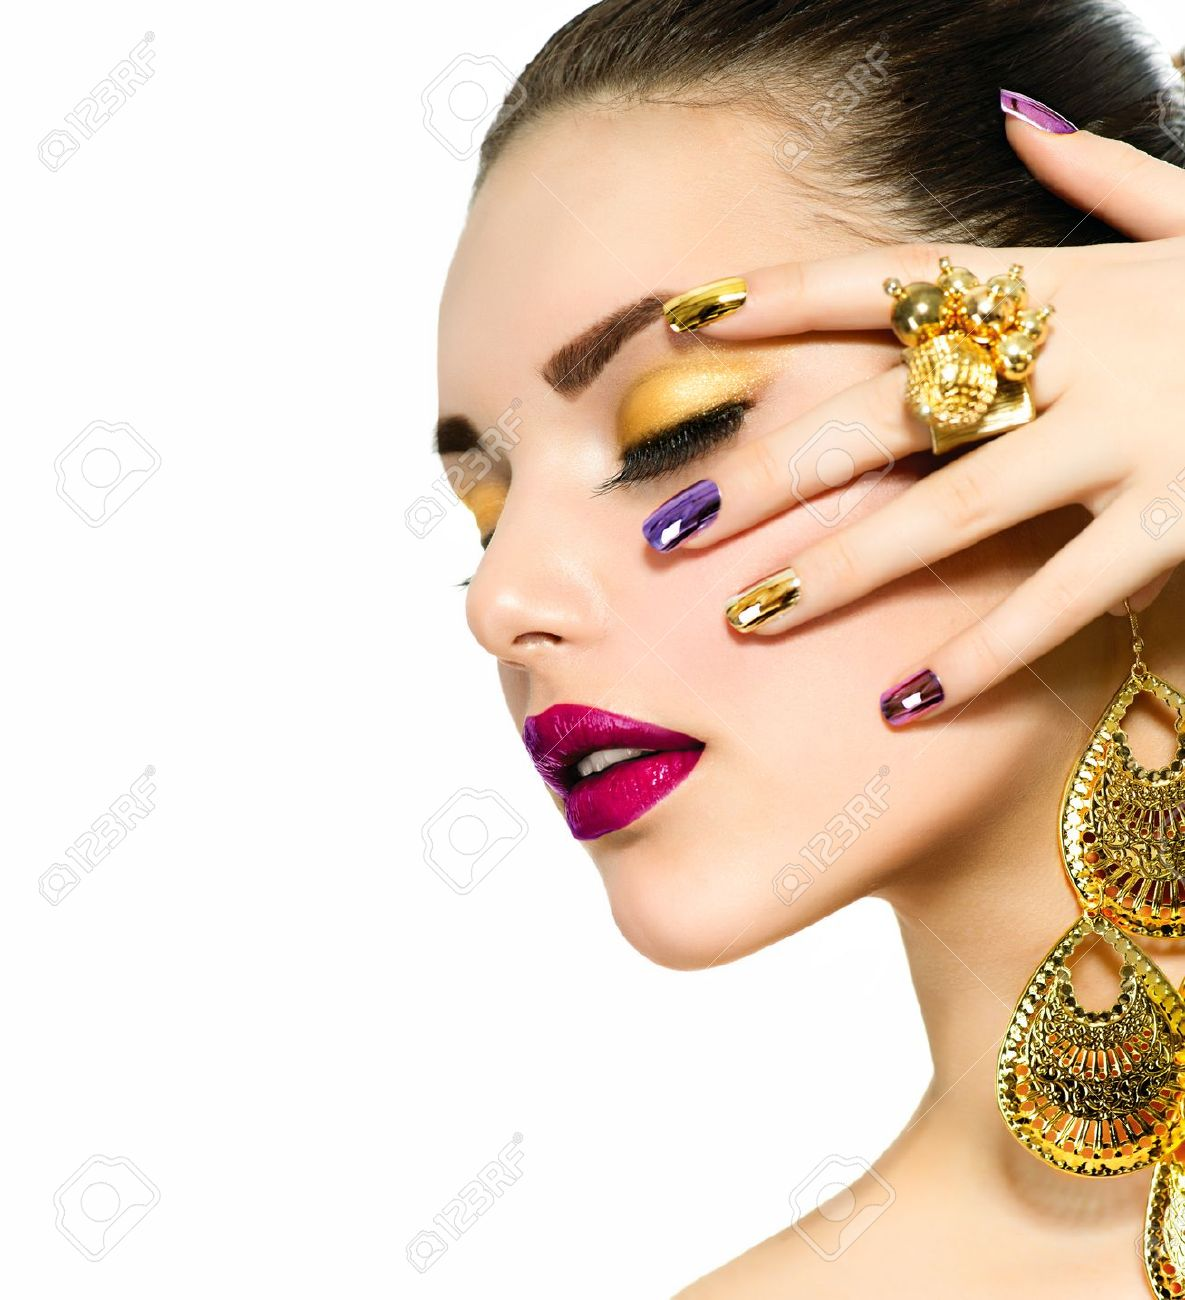 Unhas posti as aprenda como aplicar e cuidar site de Ciaafrique fashion beauty style